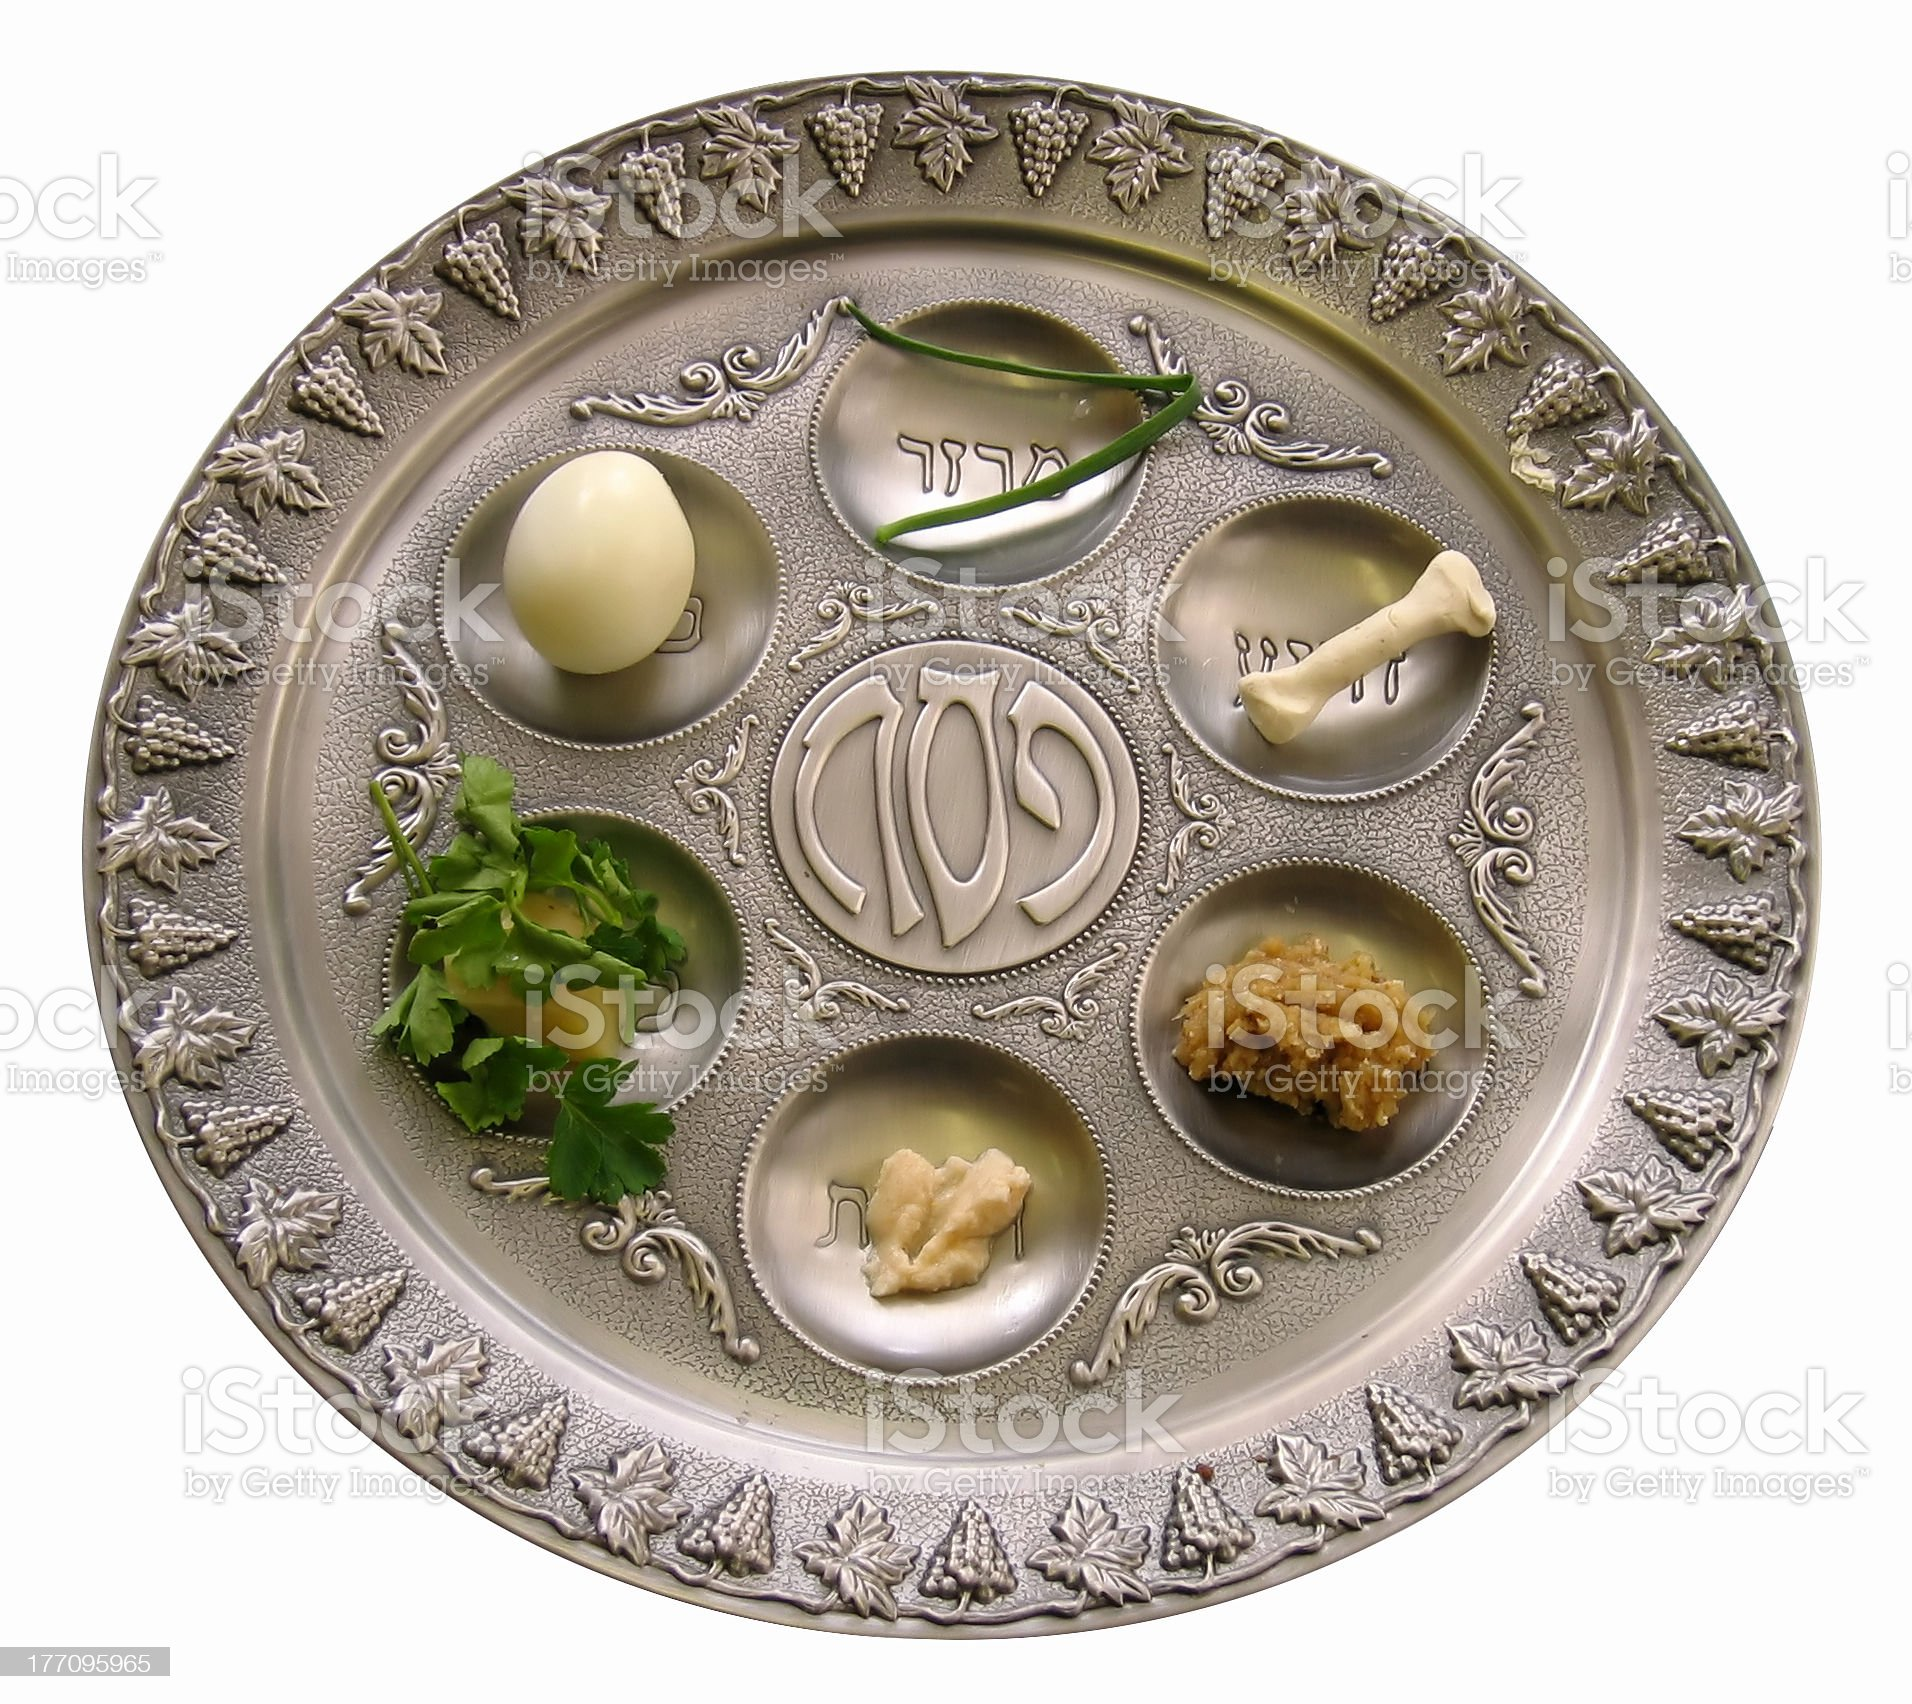 Silver Sedar plate with foods for the Passover celebration royalty-free stock photo